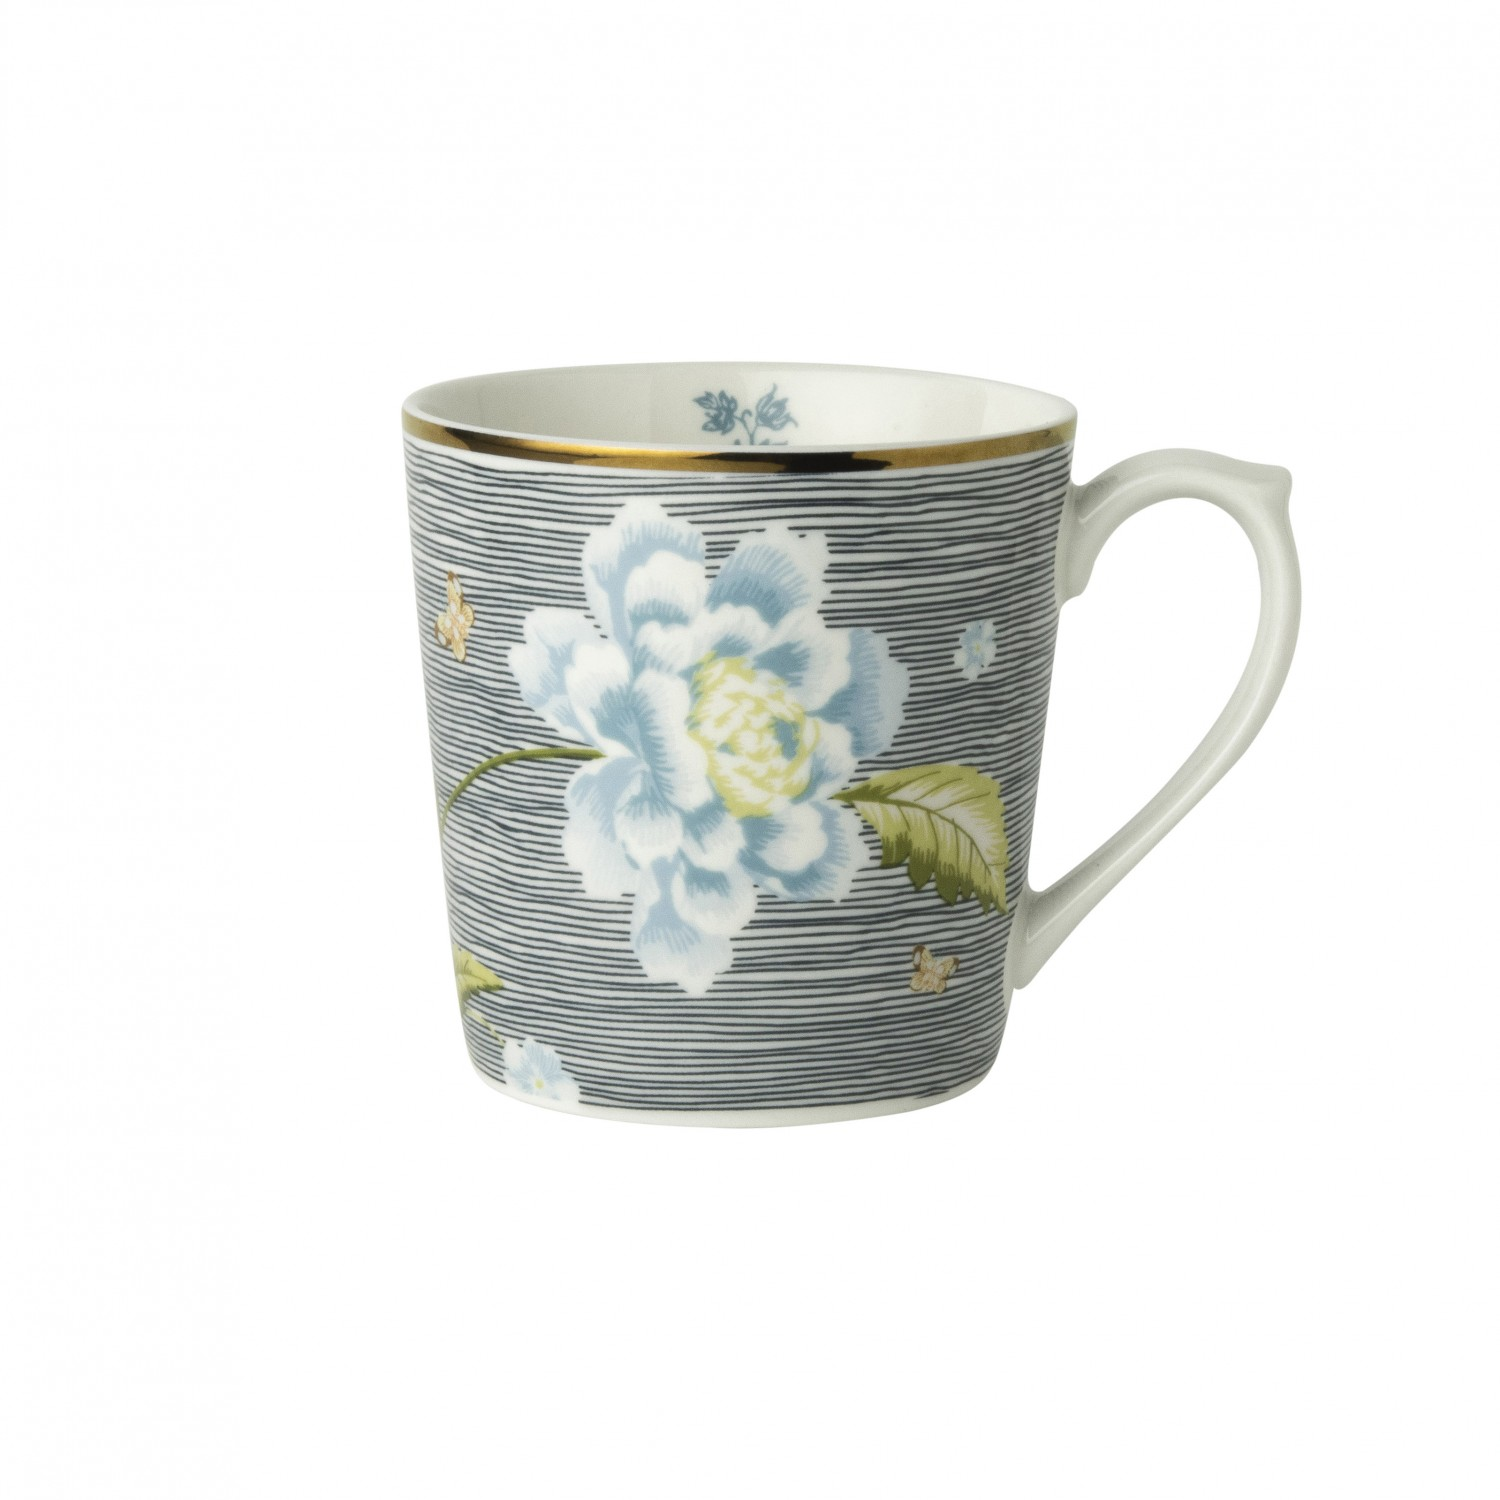 Laura-Ashley-mug-Midnight-Pinstripe-beker-180421-v